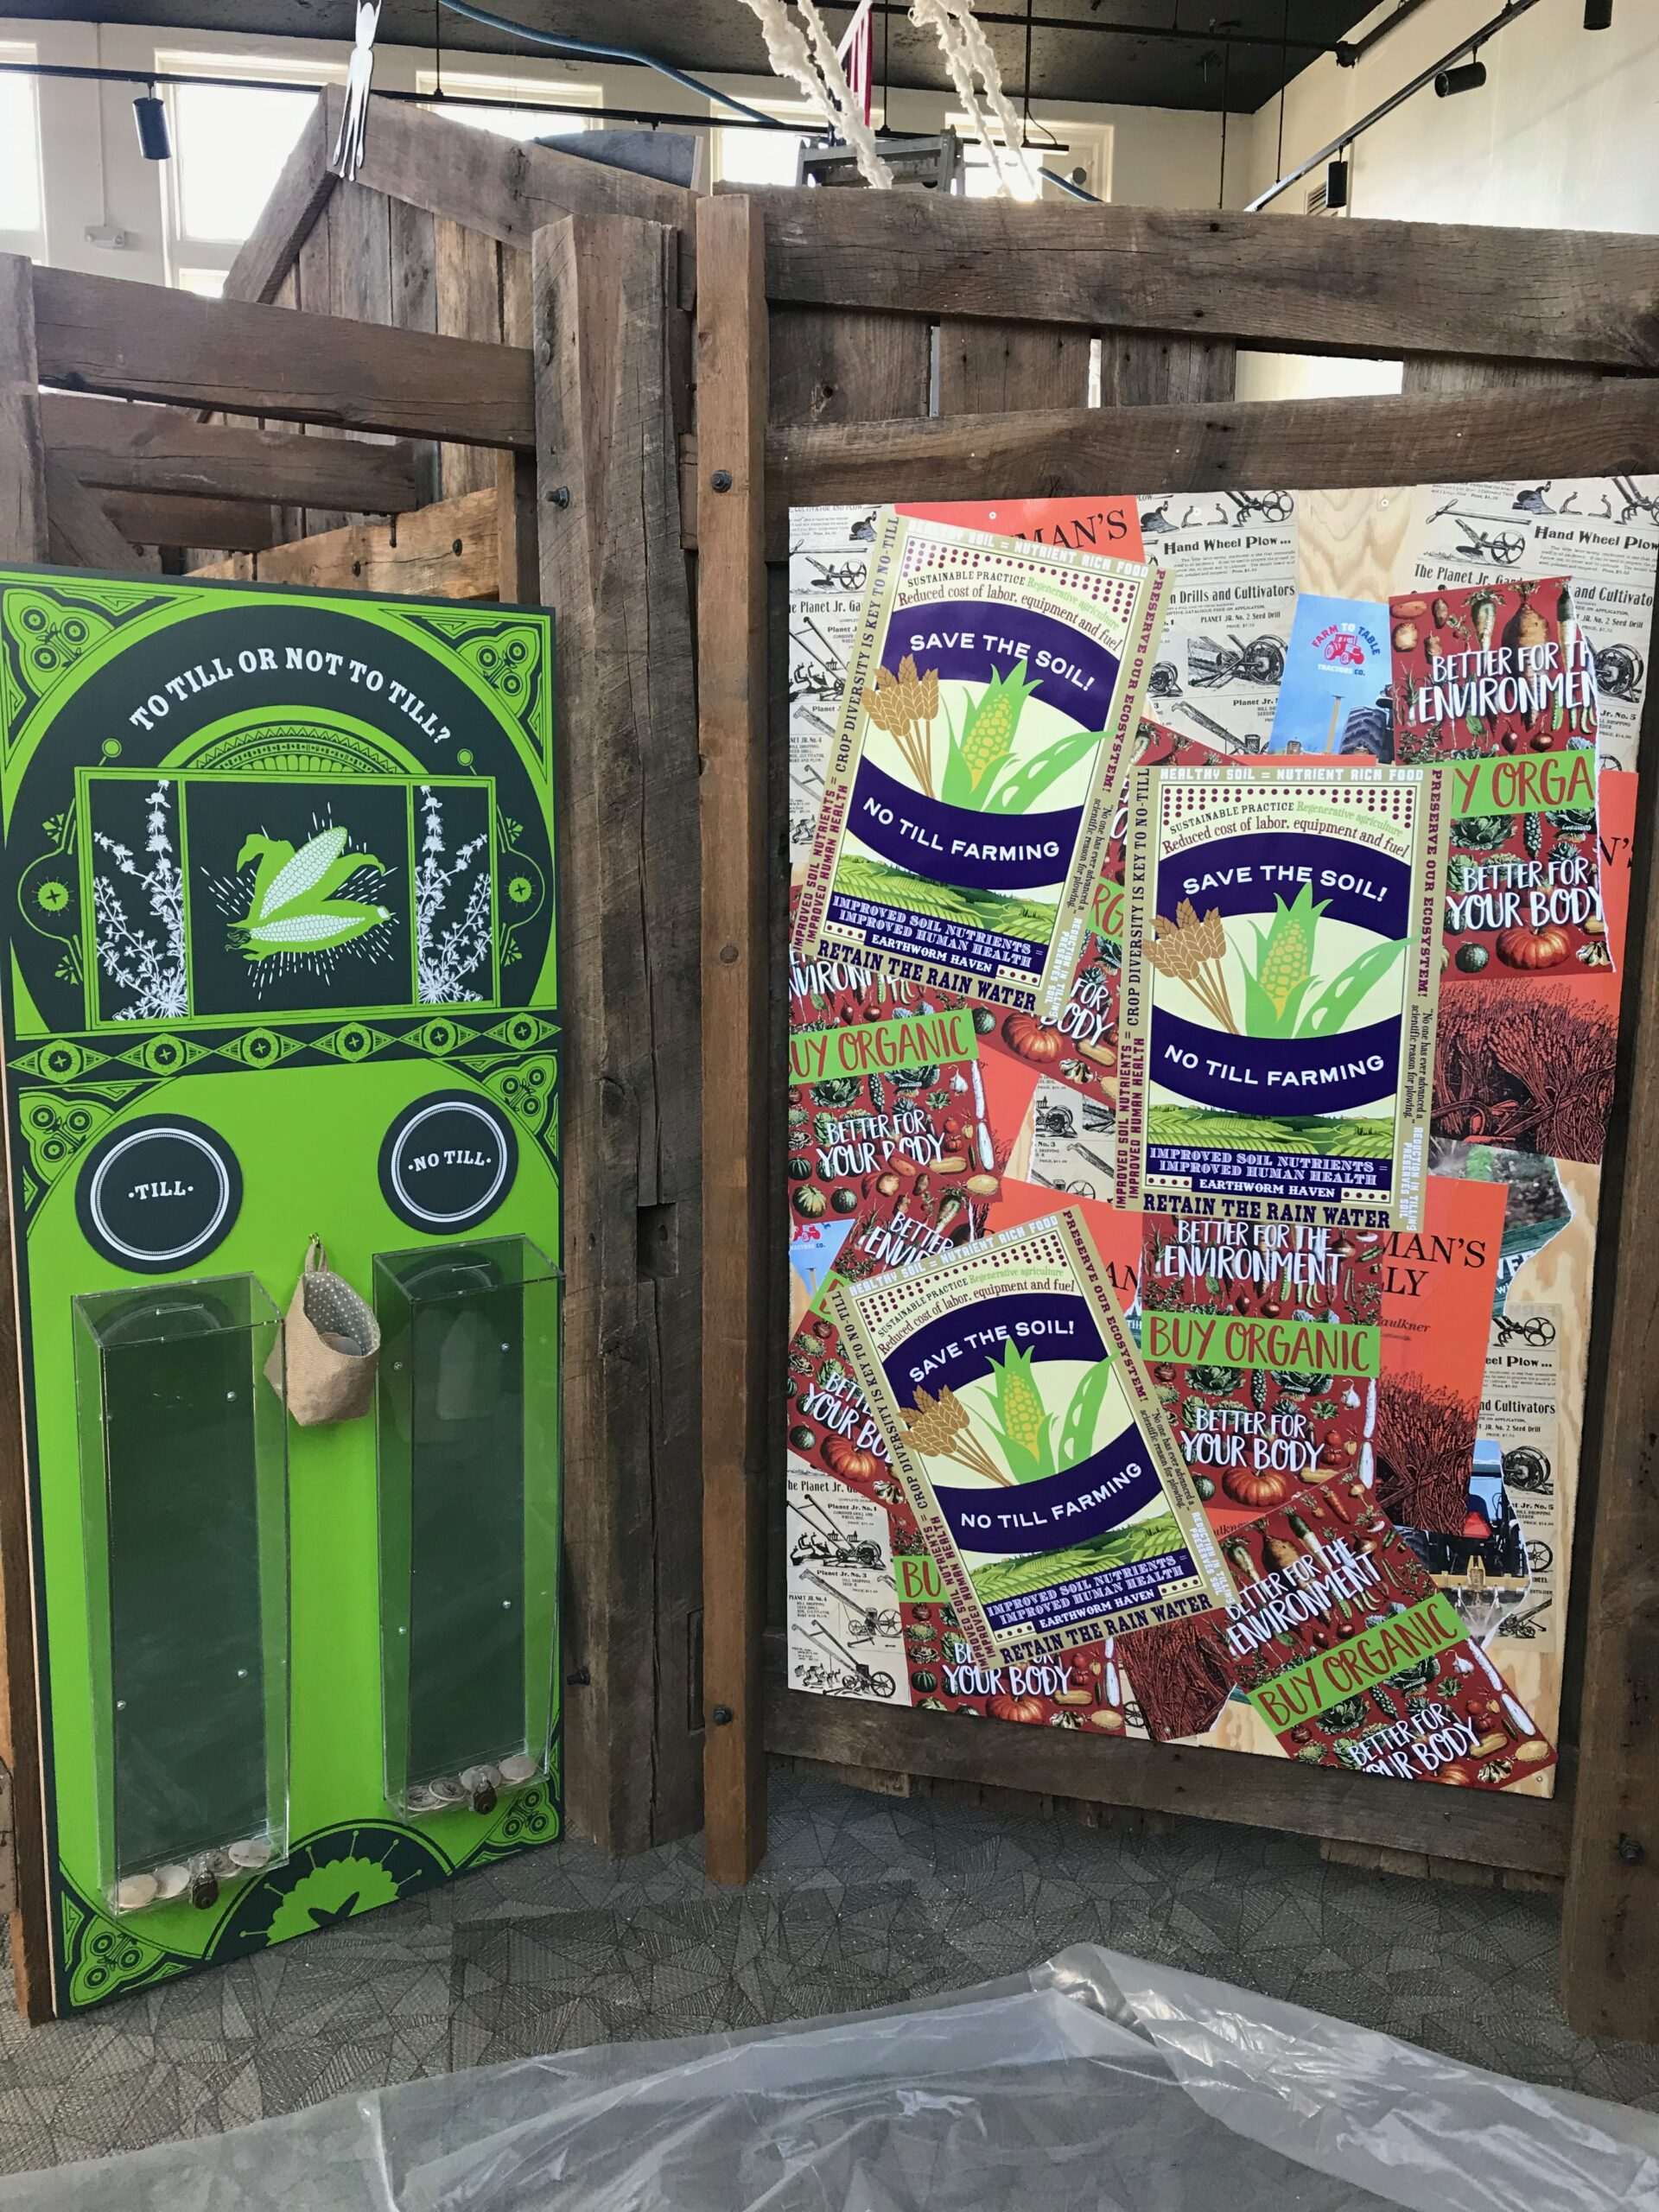 Voting kiosks allow the visitor to vote on controversial topics.